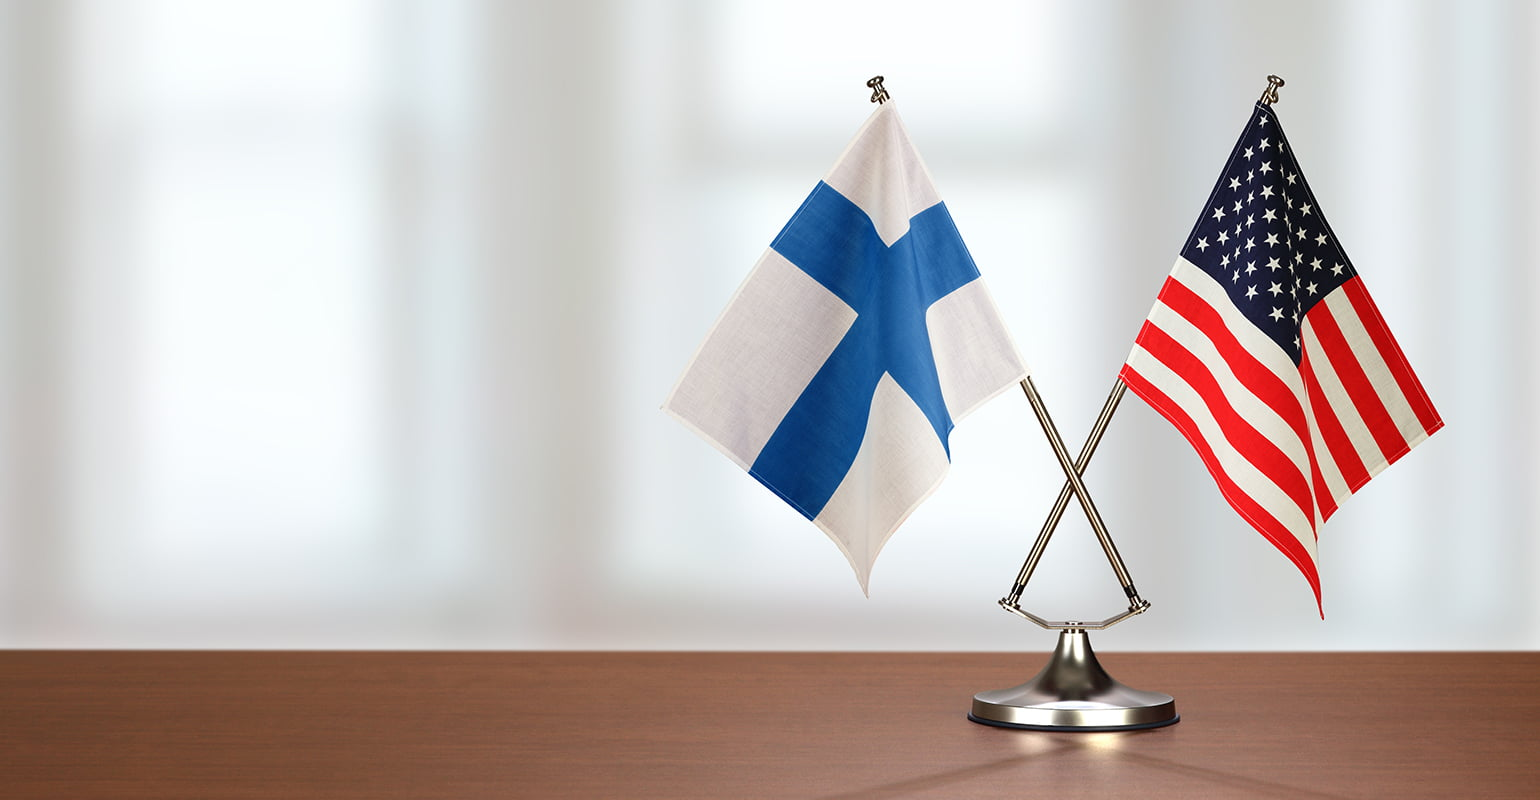 Is the U.S. Now Assisting Tax Treaty Partners on Tax Evasion Investigations?